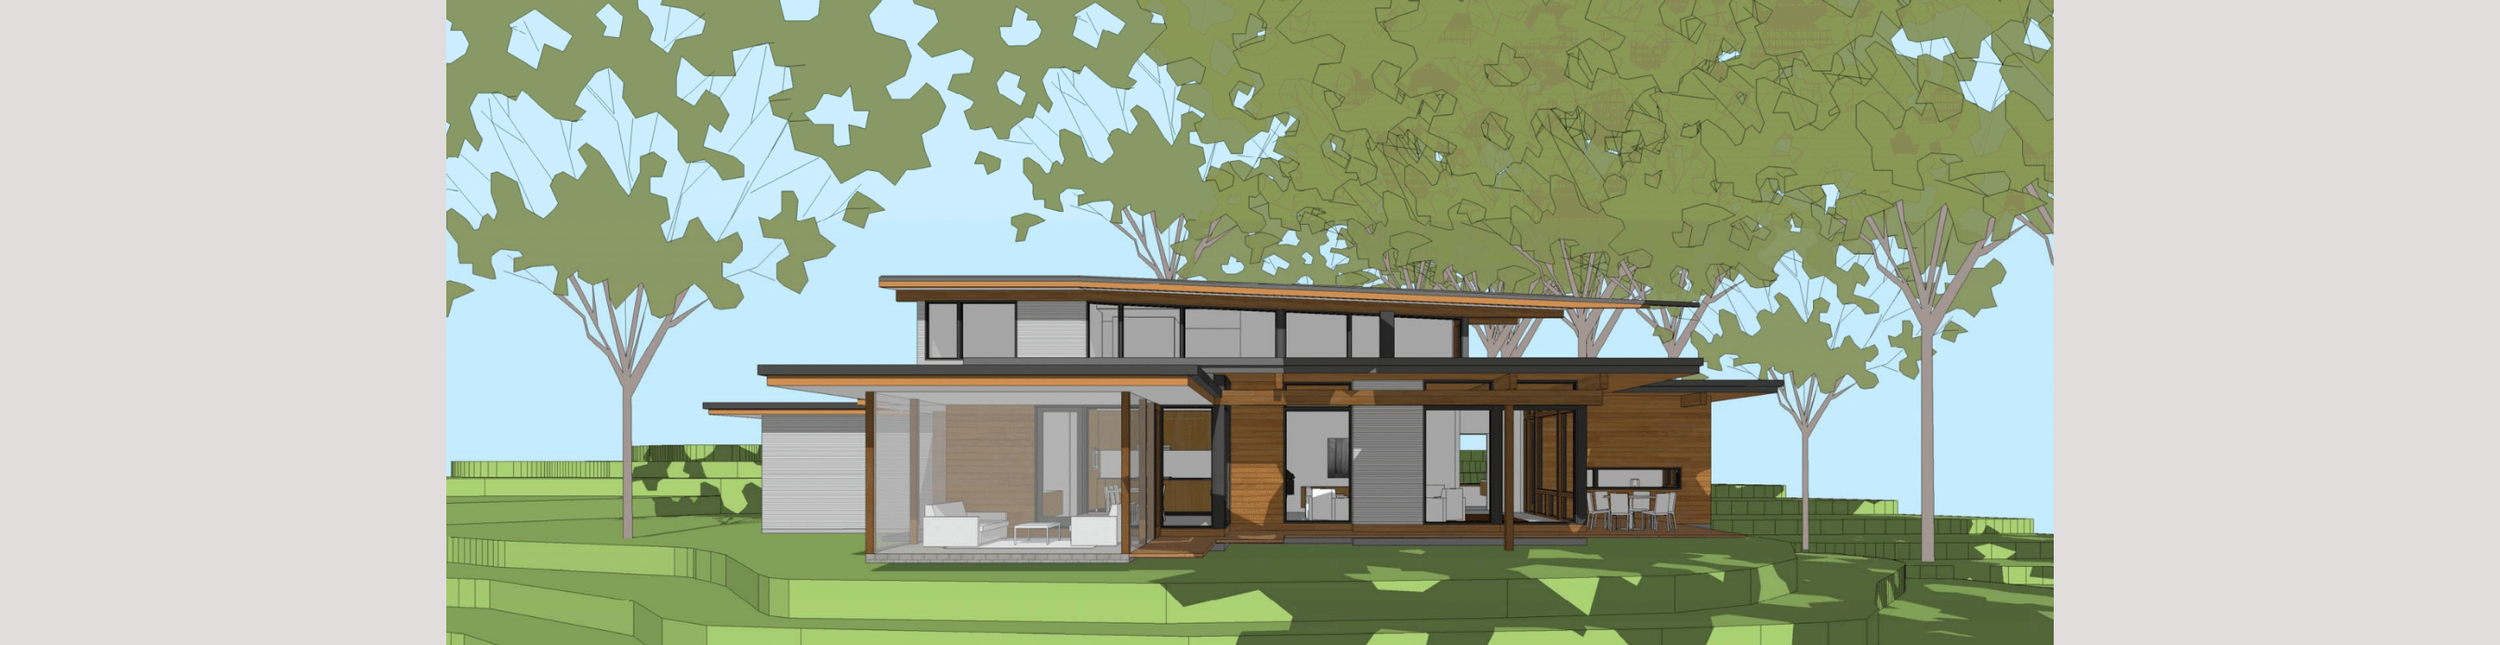 turkel_design_modern_prefab_home_santa_rosa_rebuilding_solution_firestorm.png